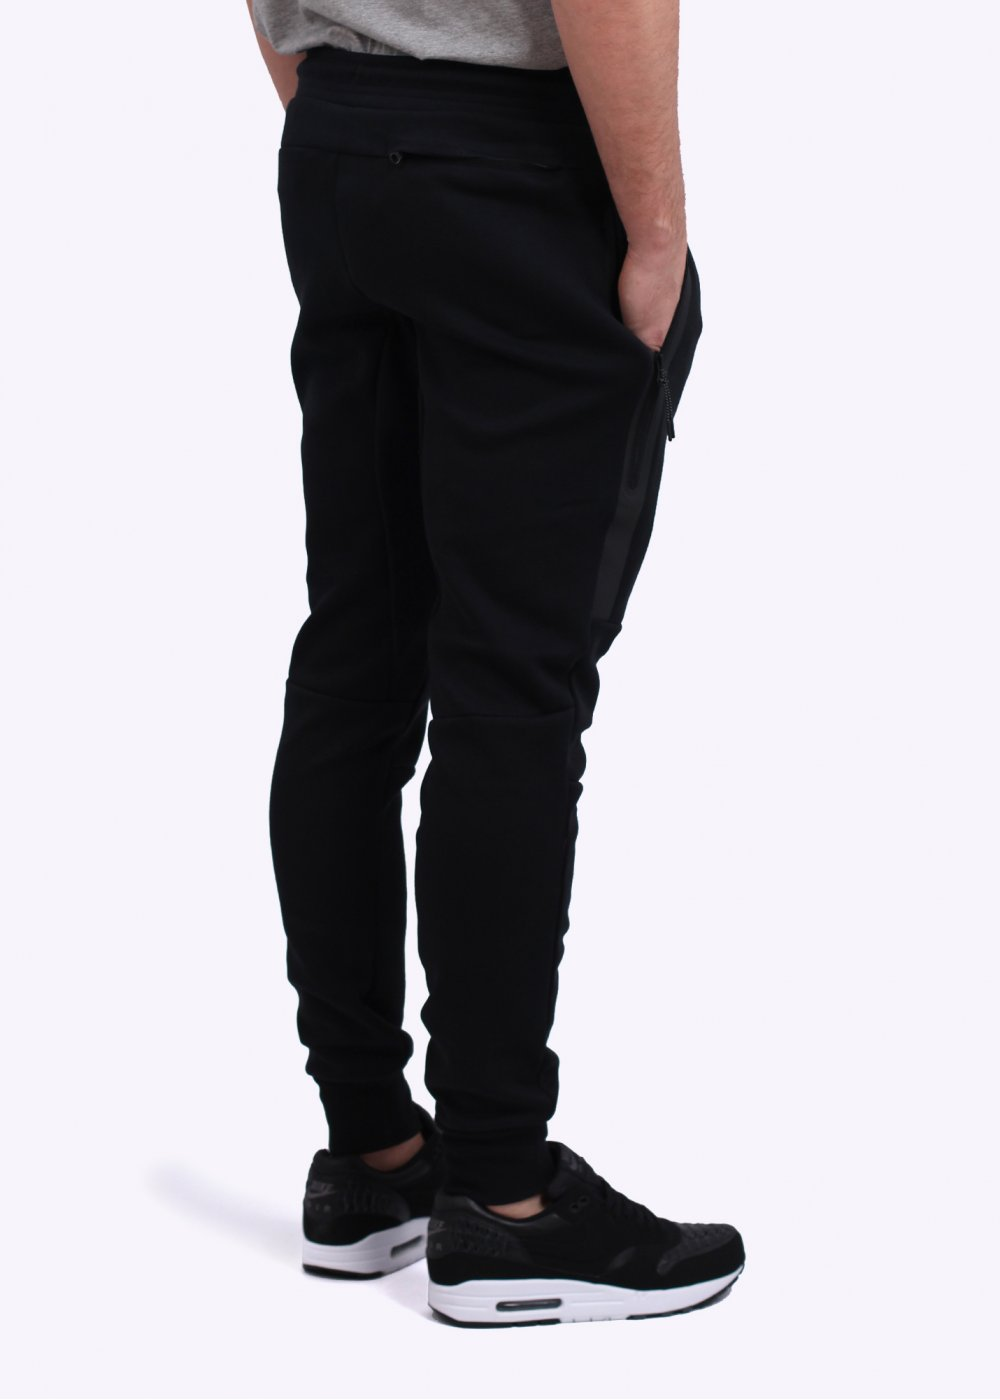 nike tech fleece pants black. Black Bedroom Furniture Sets. Home Design Ideas